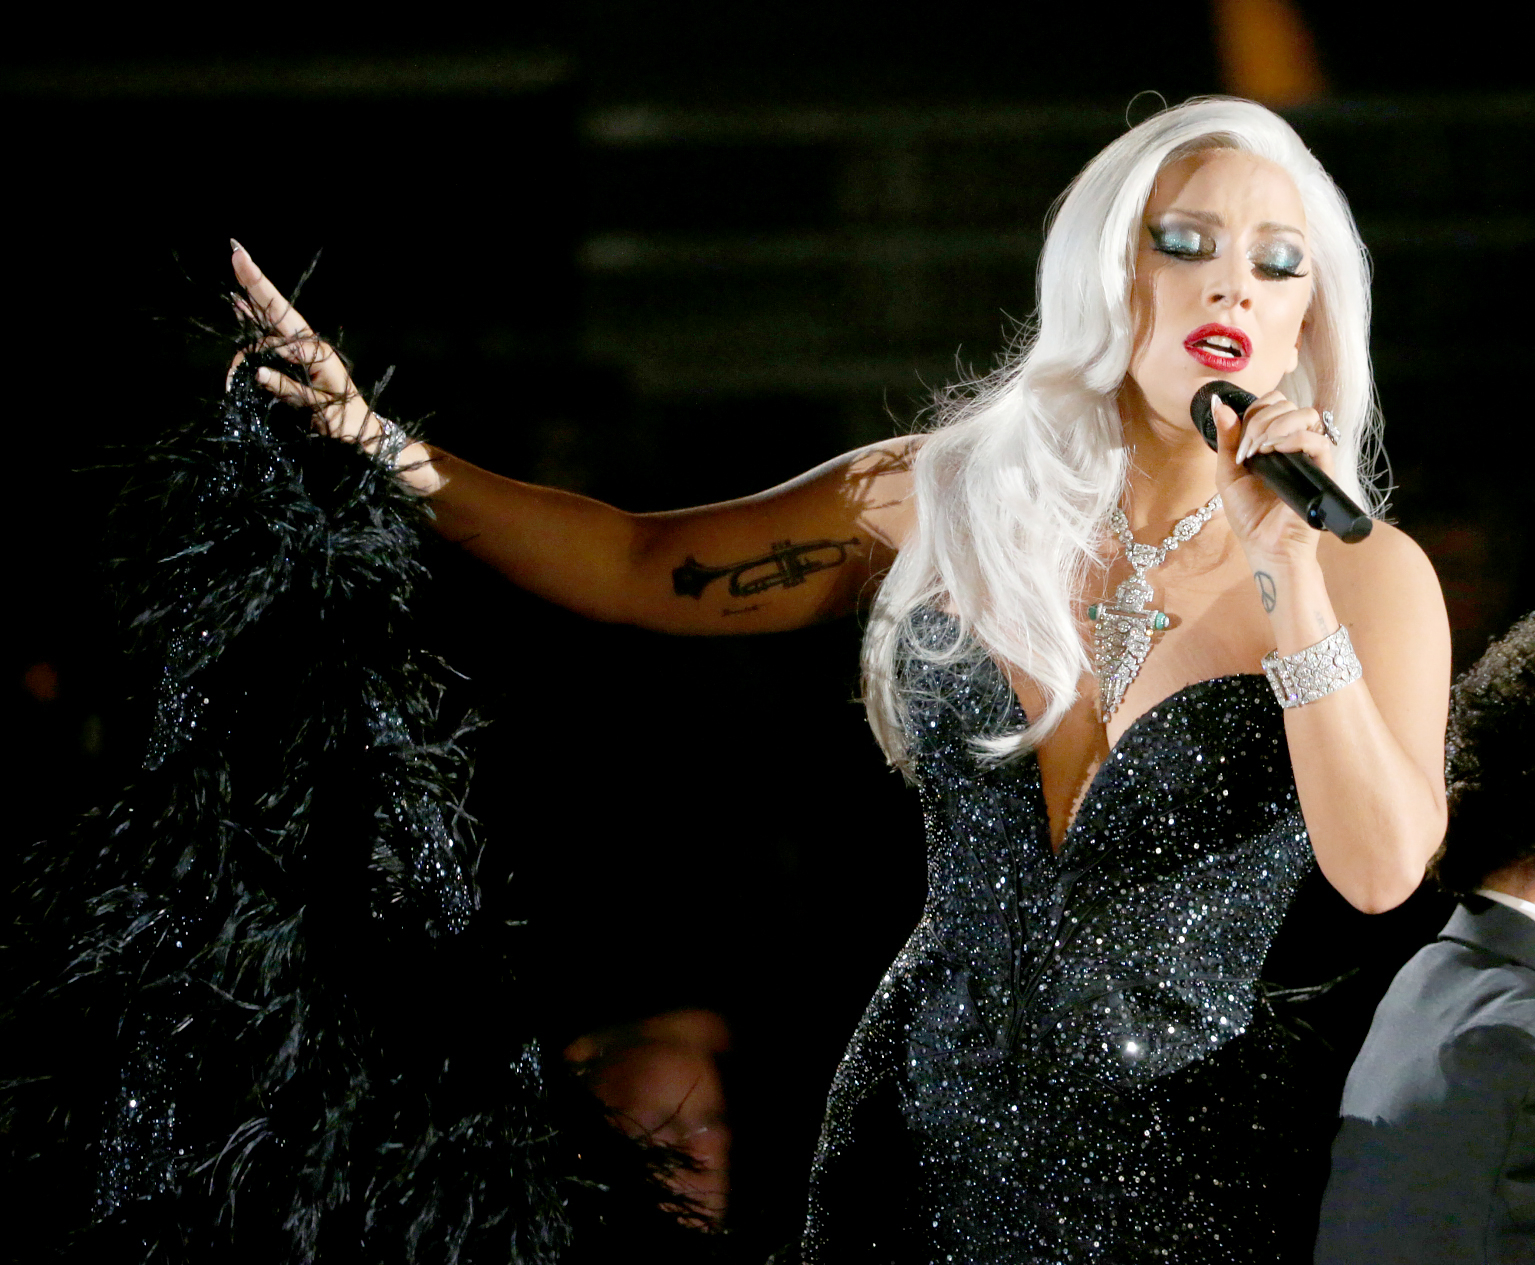 Lady Gaga performs during The 57th Annual Grammy Awards in 2015.